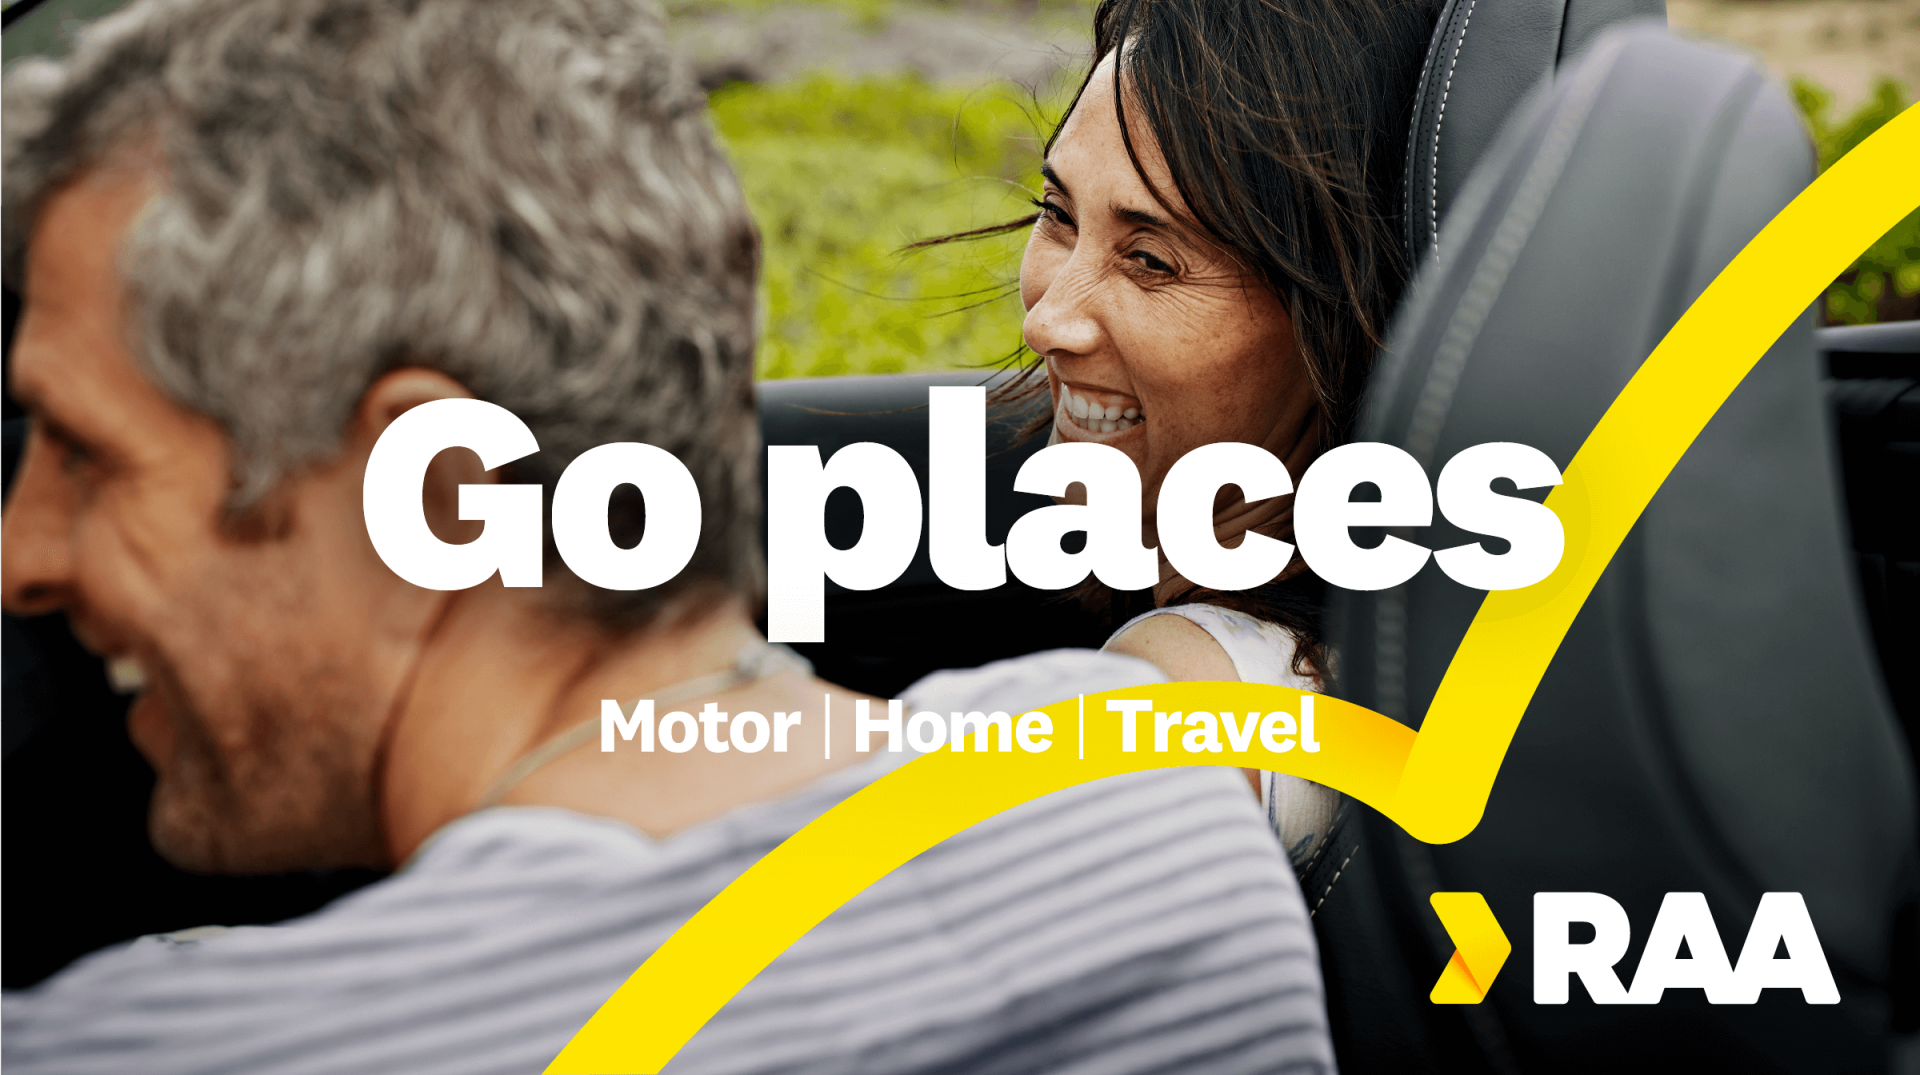 Poster of a couple in a car, with the statement 'Go places' and the RAA pillars over the top